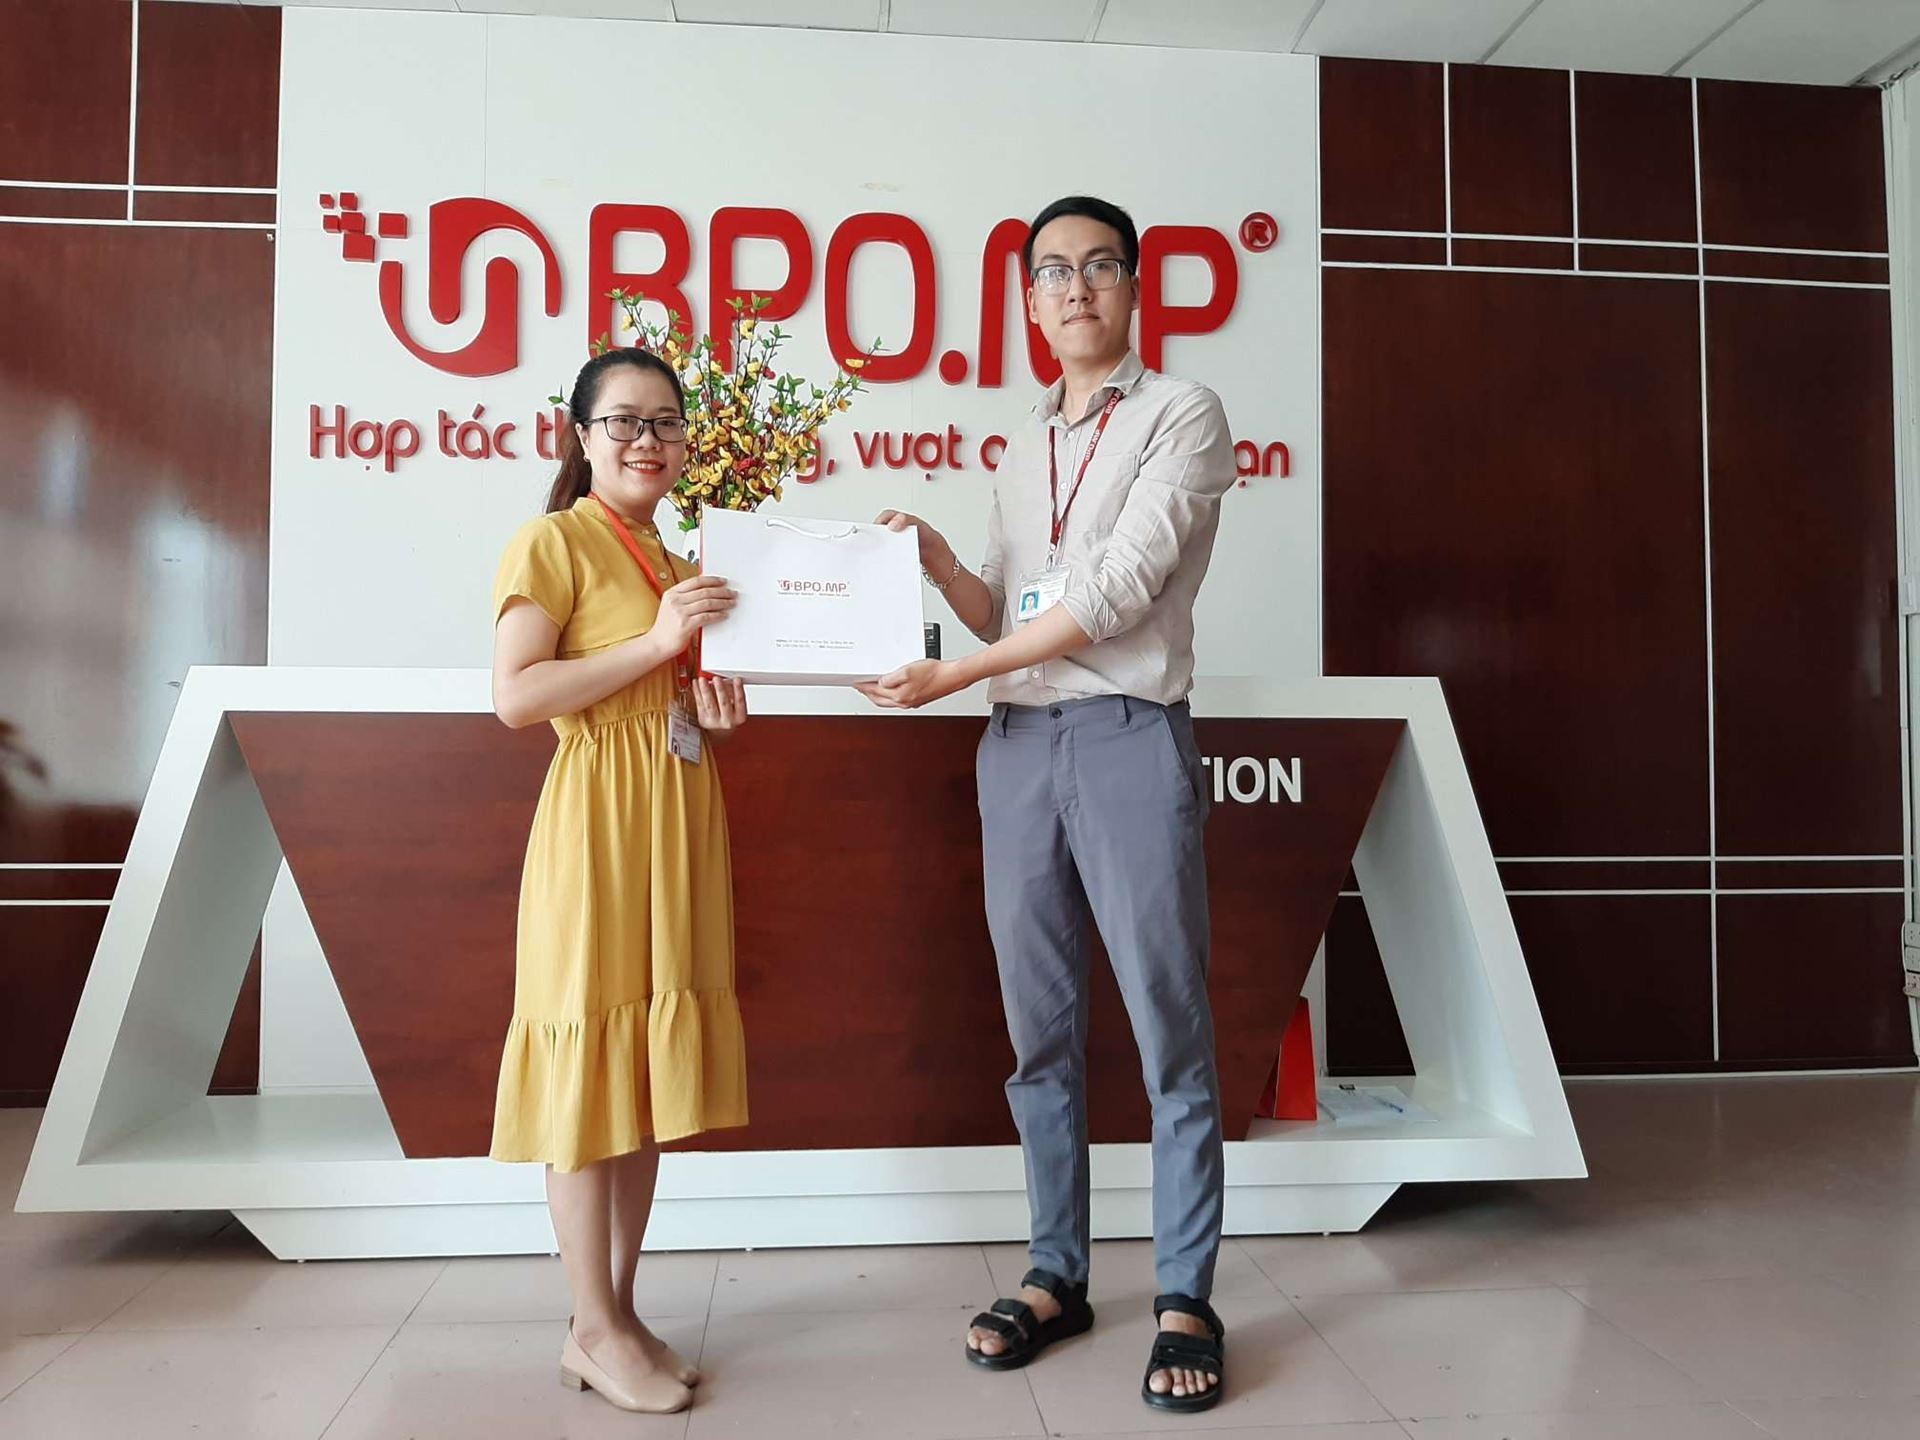 BPO.MP GIVES BIRTHDAY GIFTS TO EMPLOYEES